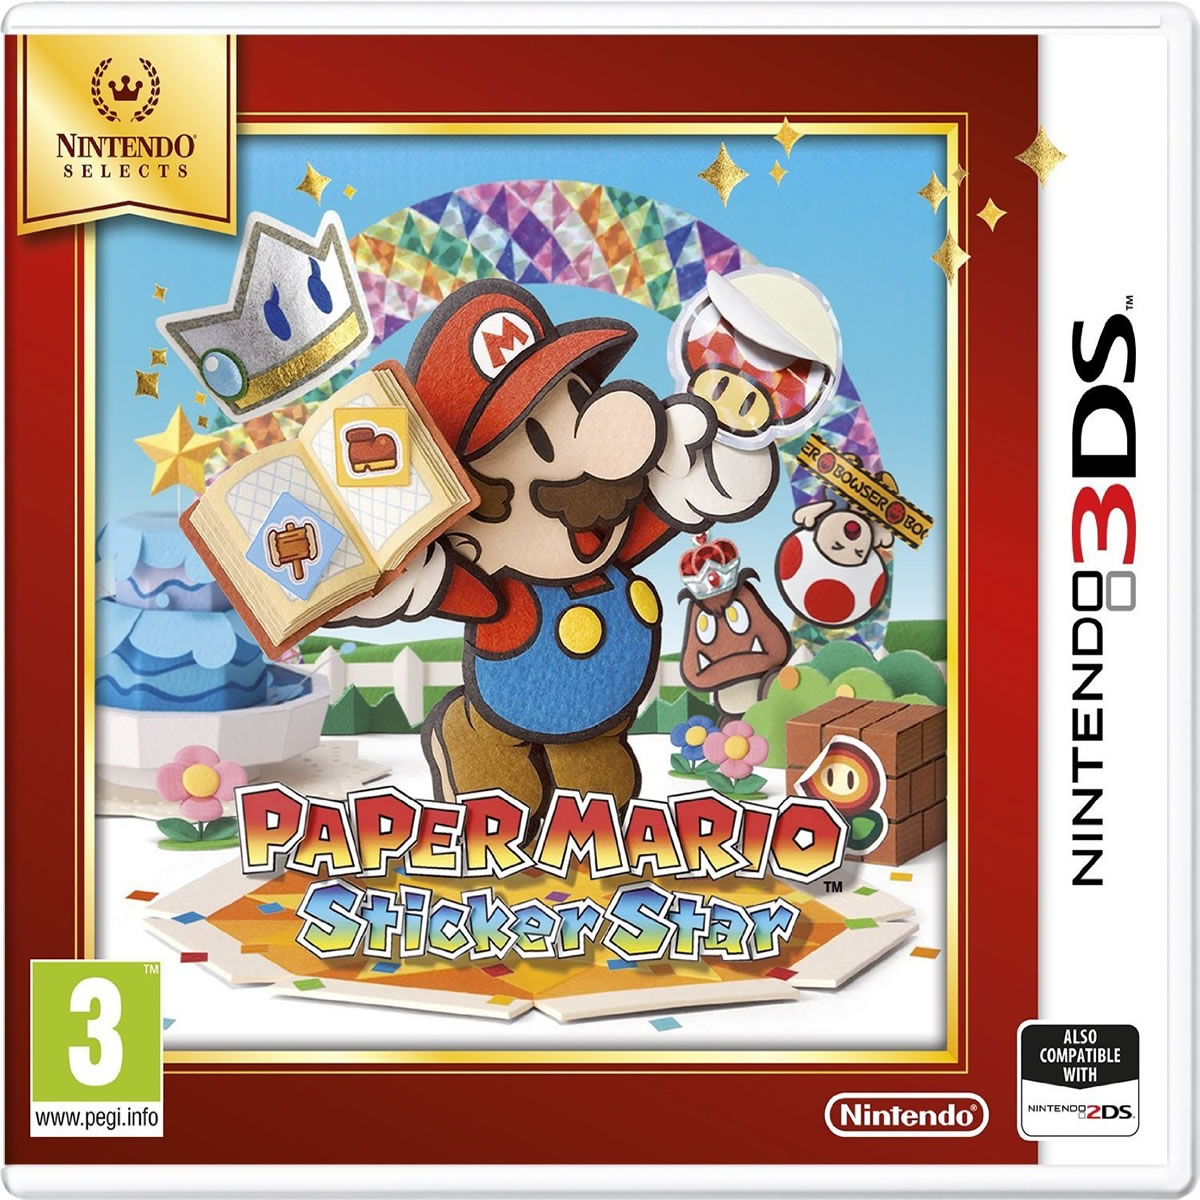 PAPER MARIO STICKER STAR - SELECTS (3DS, DS)